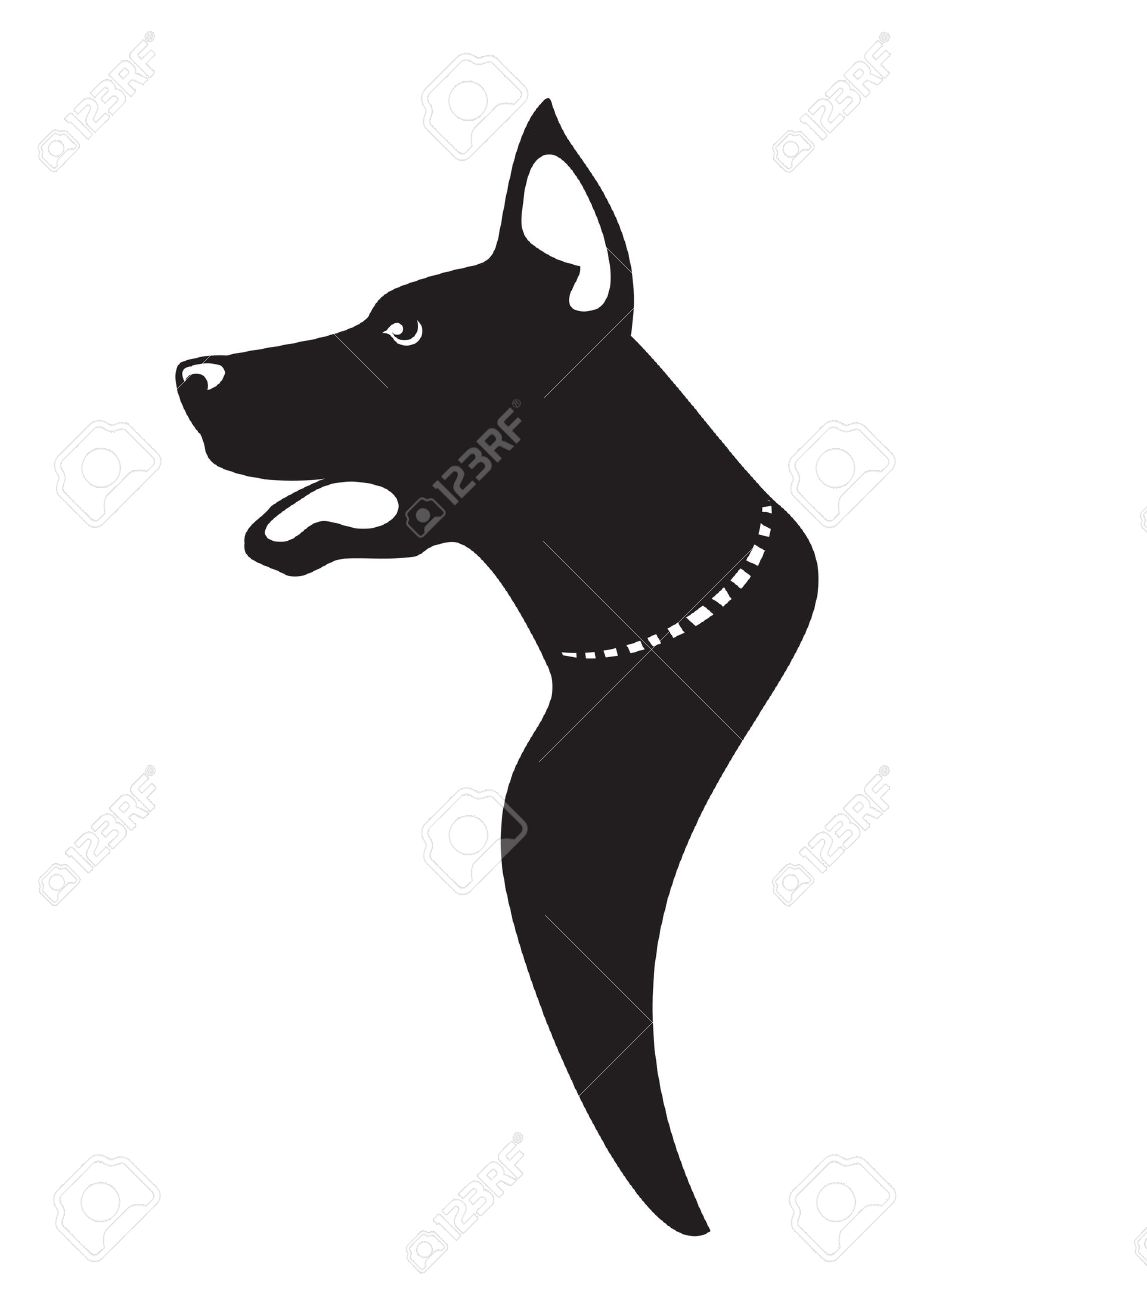 8,584 Dog Ears Stock Vector Illustration And Royalty Free Dog Ears.